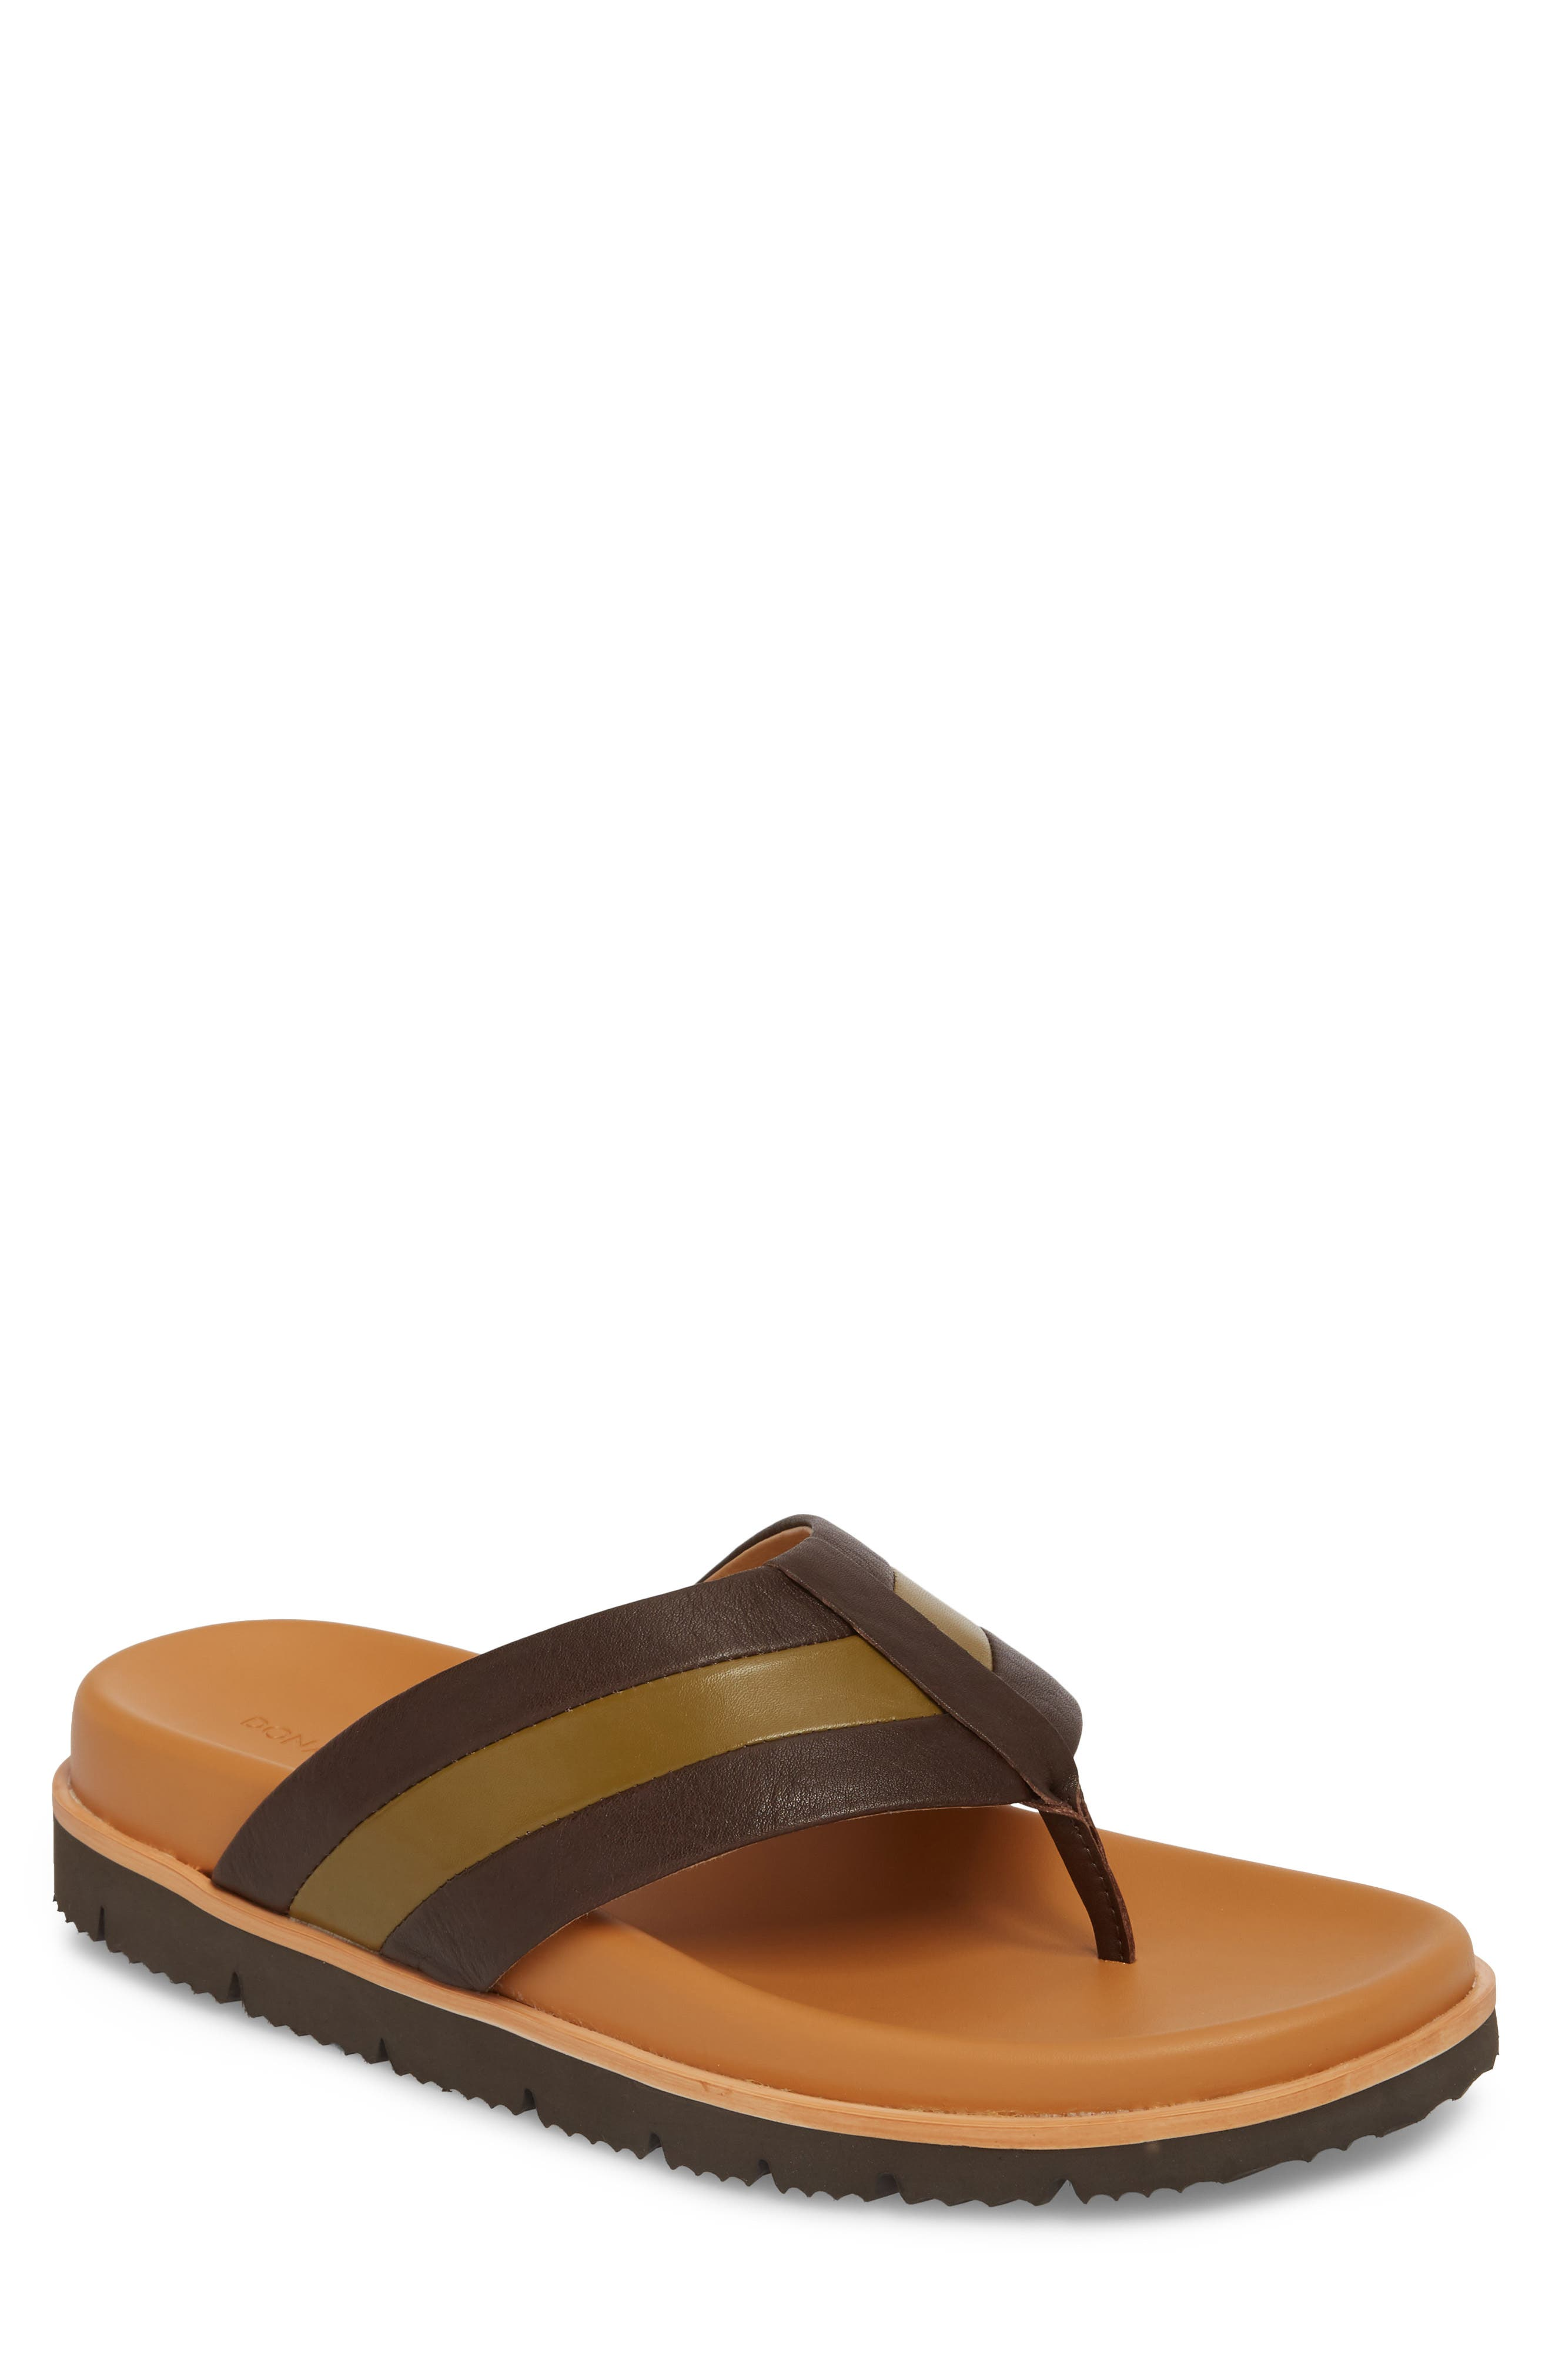 Bryce Striped Flip Flop,                         Main,                         color, Brown/ Tan Leather